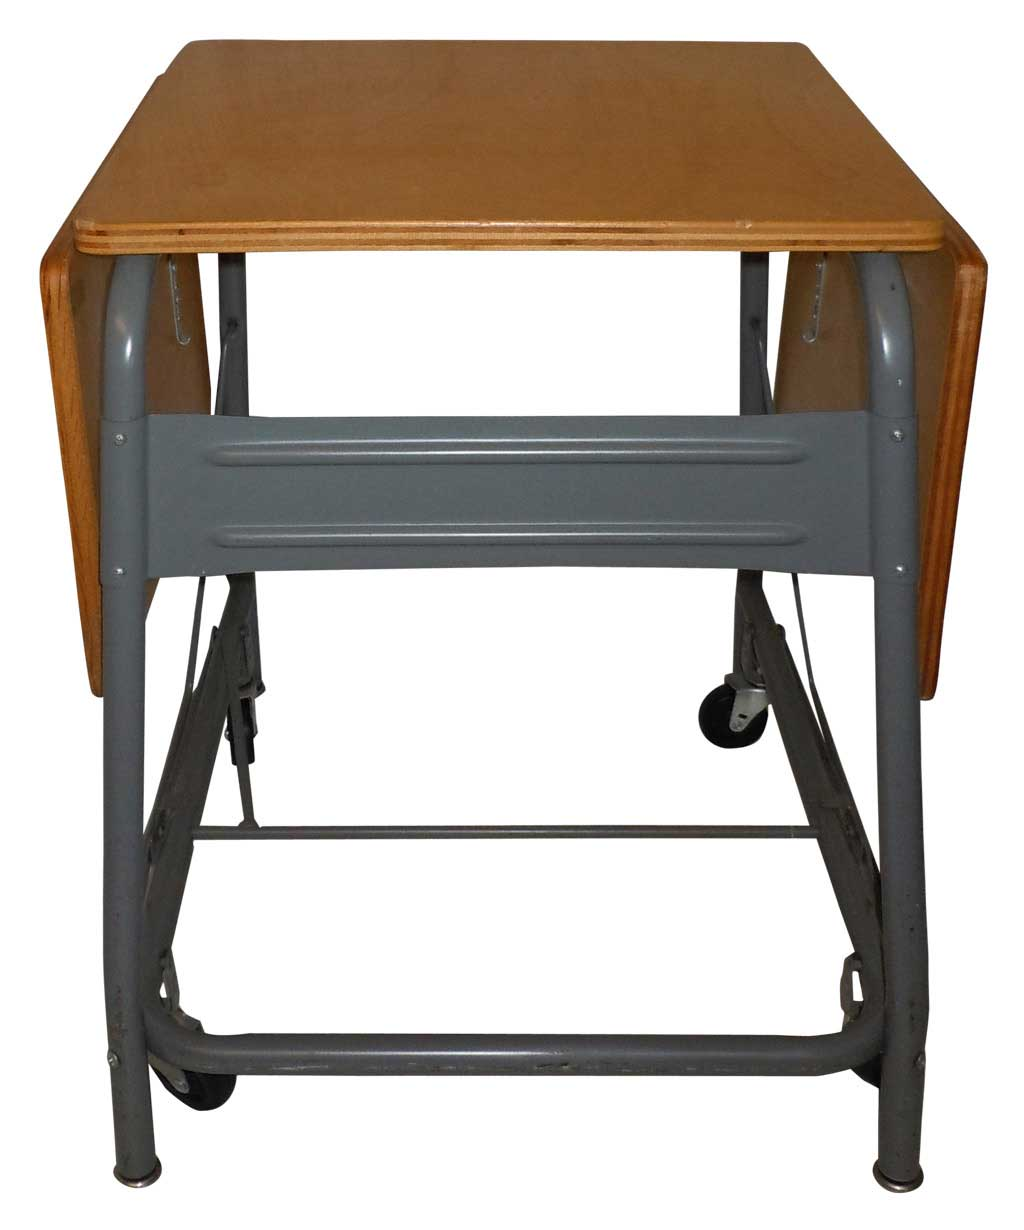 Vintage Folding Typing Table and Rolling Printer Stand